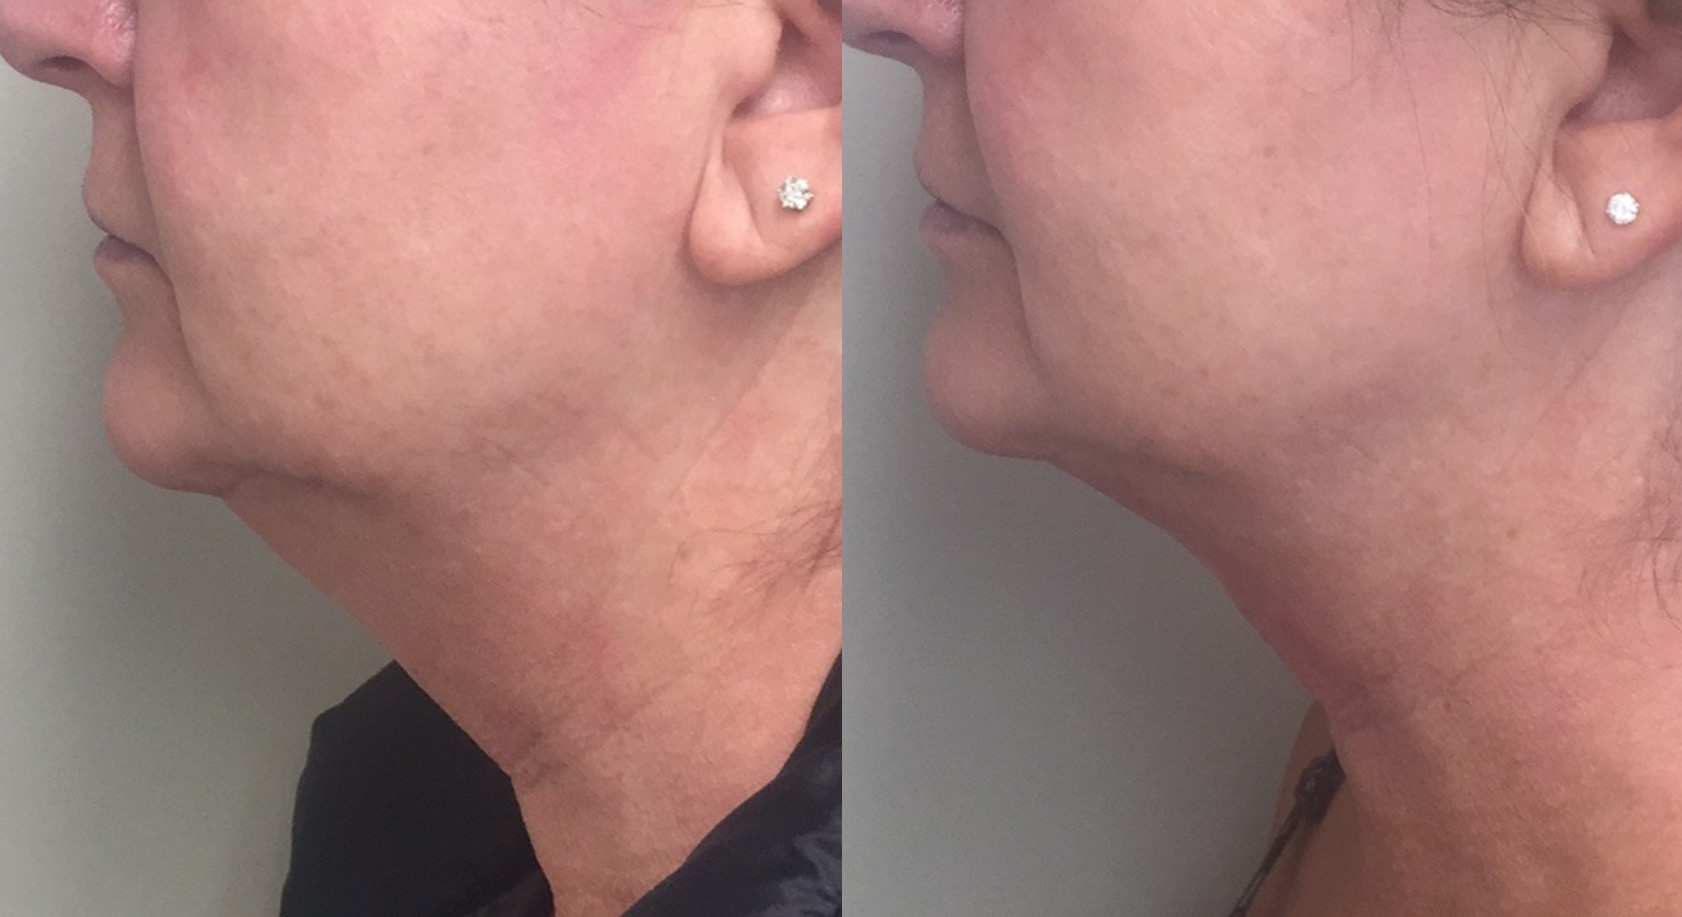 Kybella-1-treatment-L-side-2.jpg